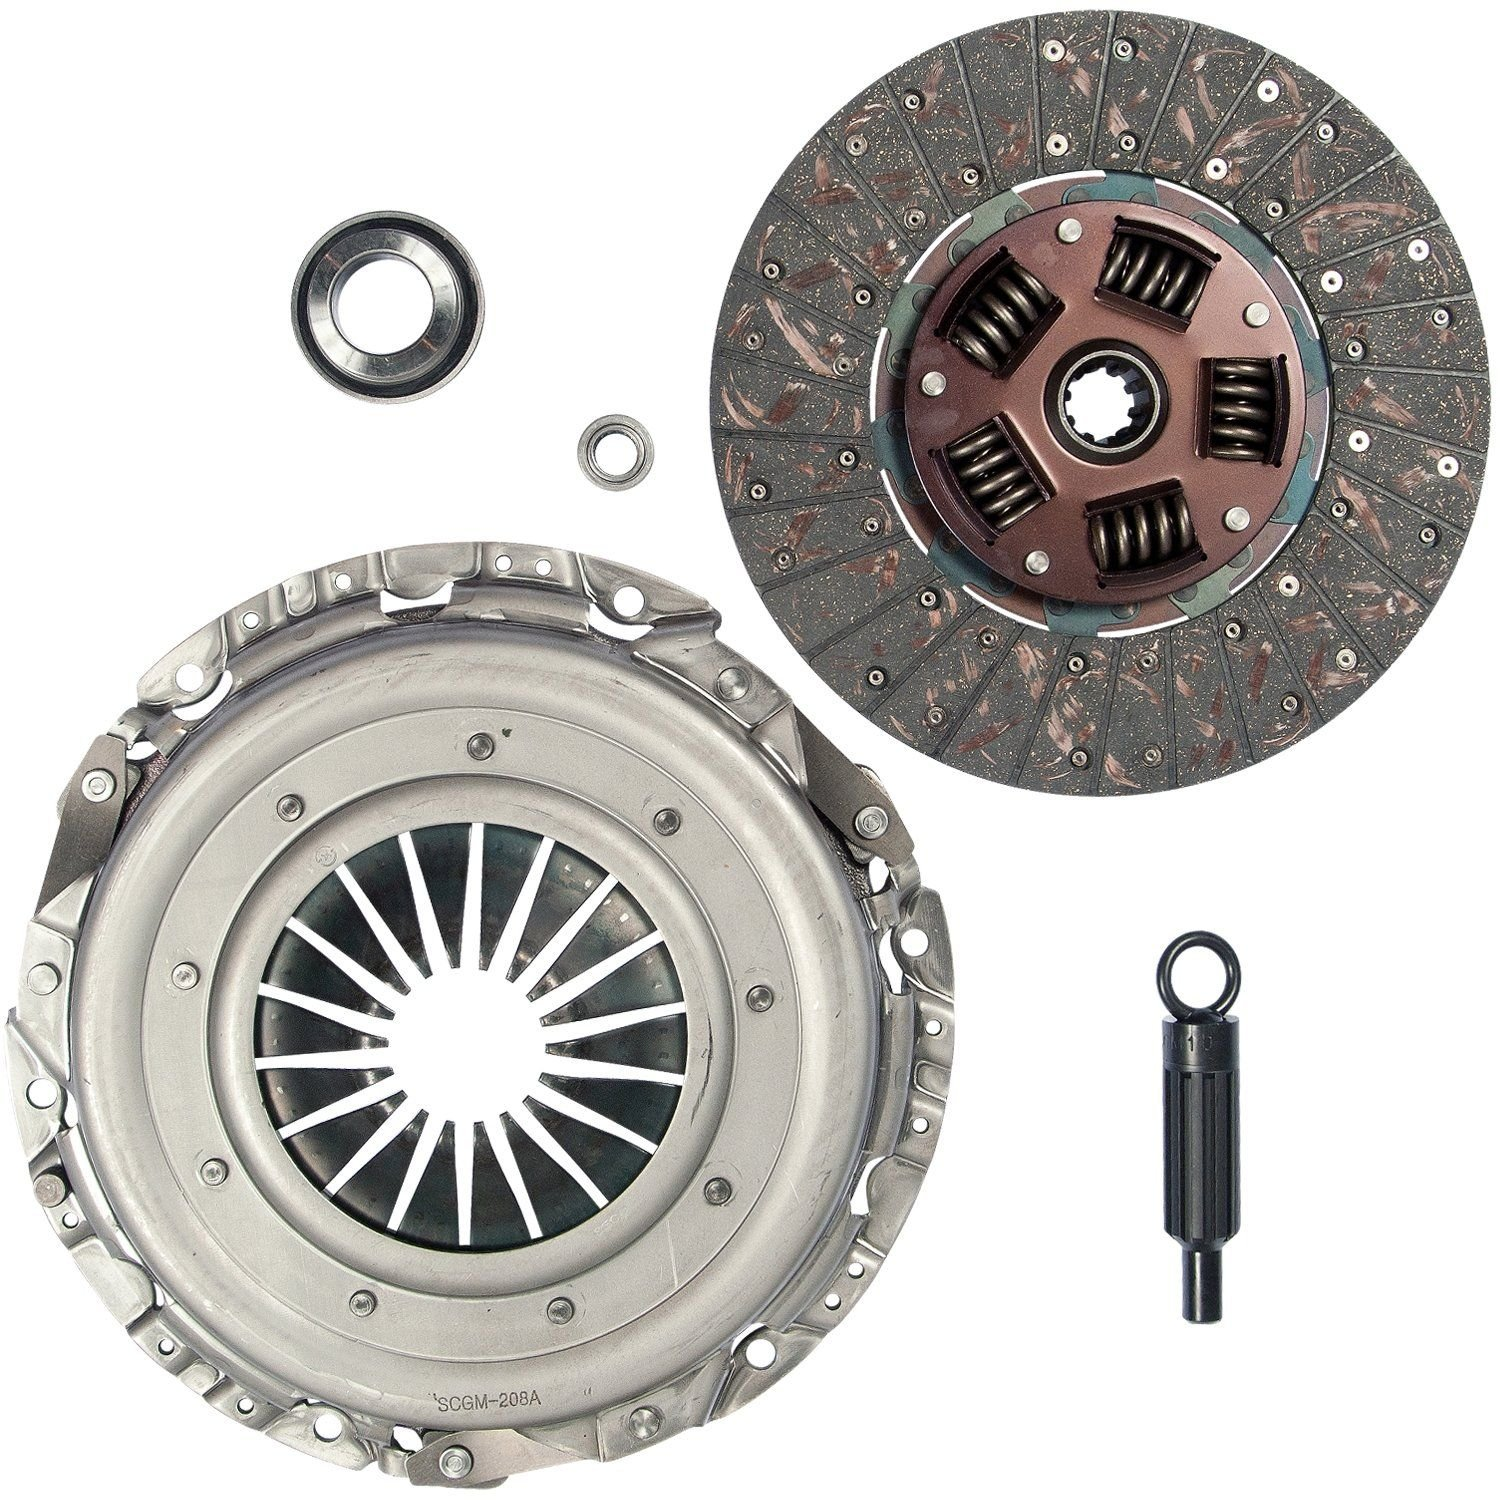 GMC P3500 Clutch Kit Replacement (Exedy, LuK, Rhino Pac